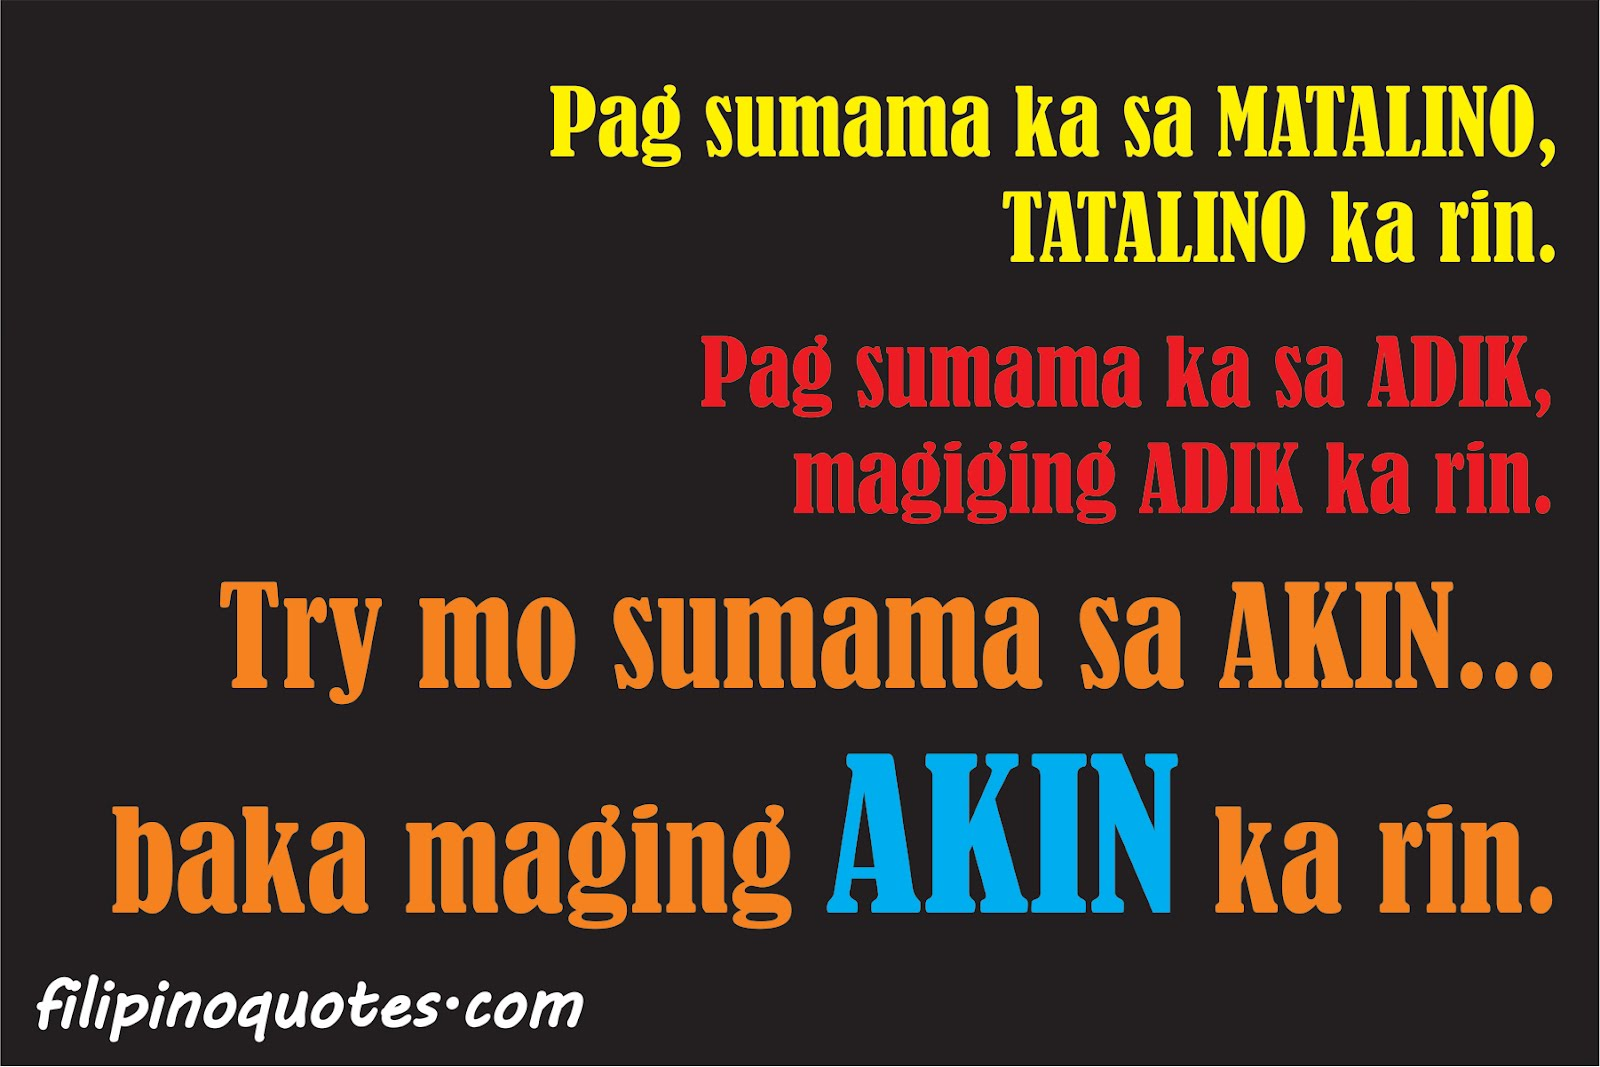 Love Quotes Tagalog Funny Tagalog : Tagalog Banat Love Quotes 2012 - Tagalog Love Quotes